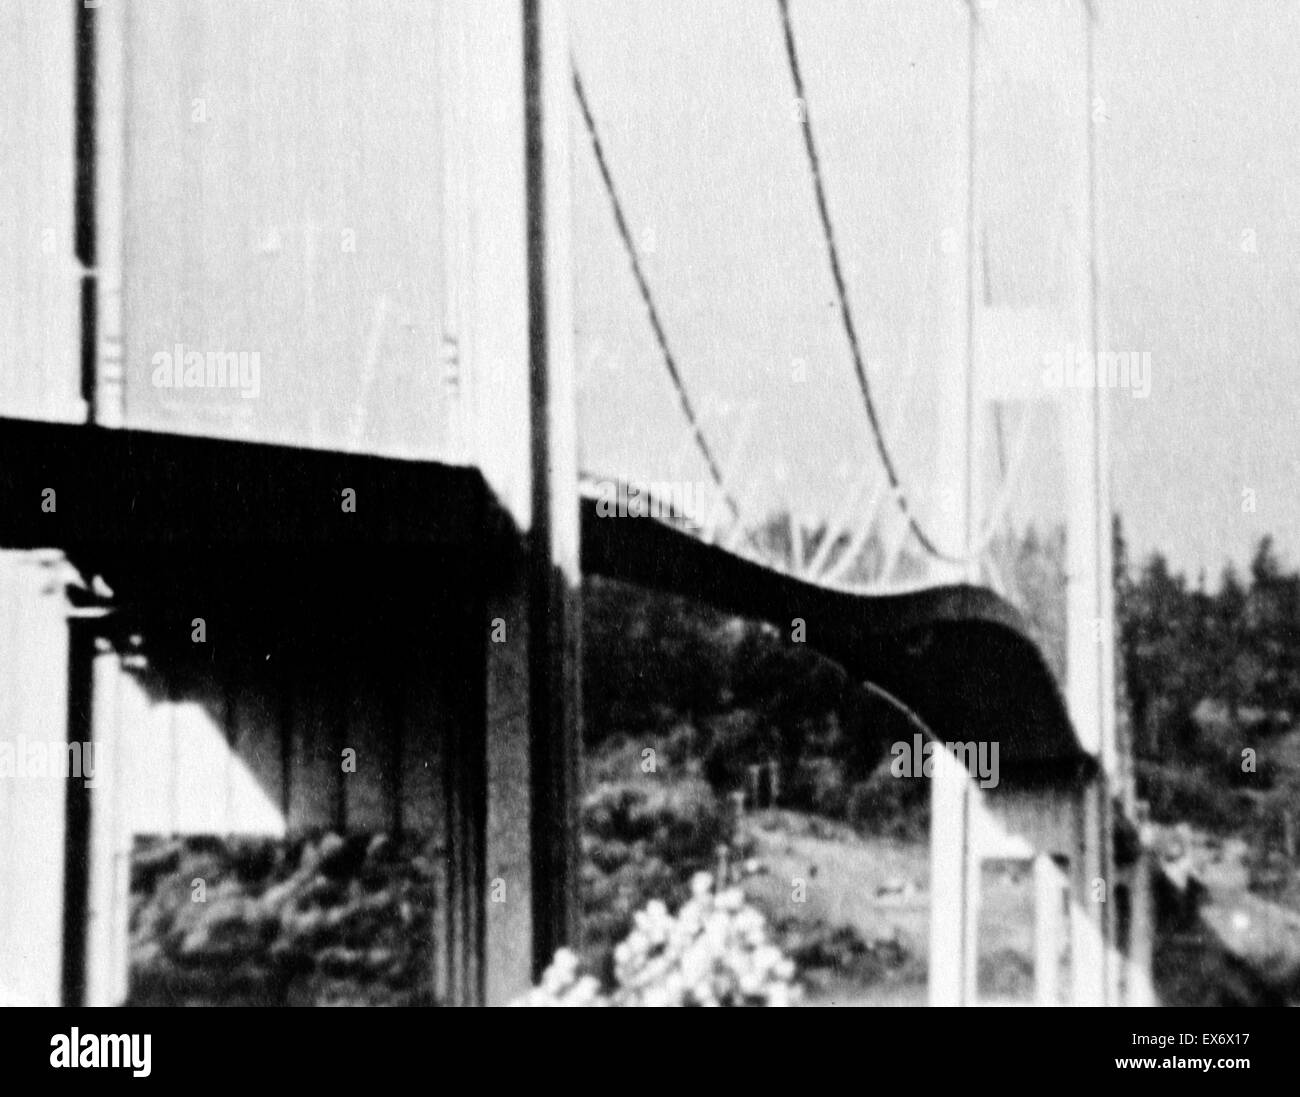 Photographic print of the original Tacoma Narrows Bridge before it's wind induced collapse. The print depicts - Stock Image